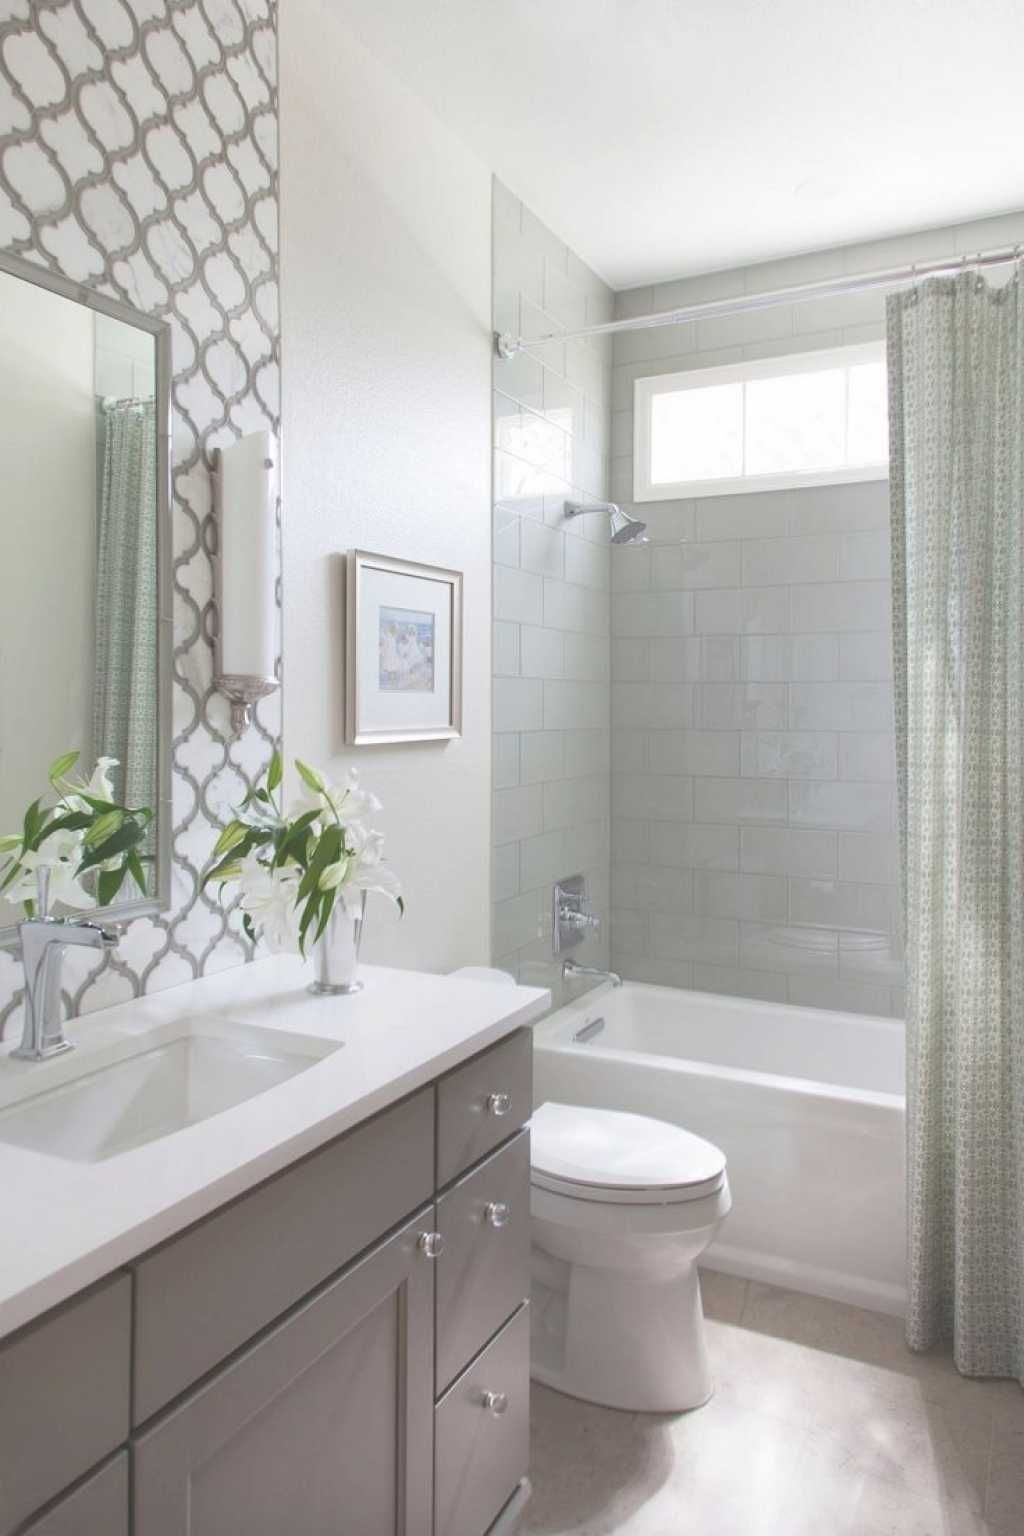 Photos Of Small Bathrooms 33 Inspirational Small Bathroom Remodel Before And After